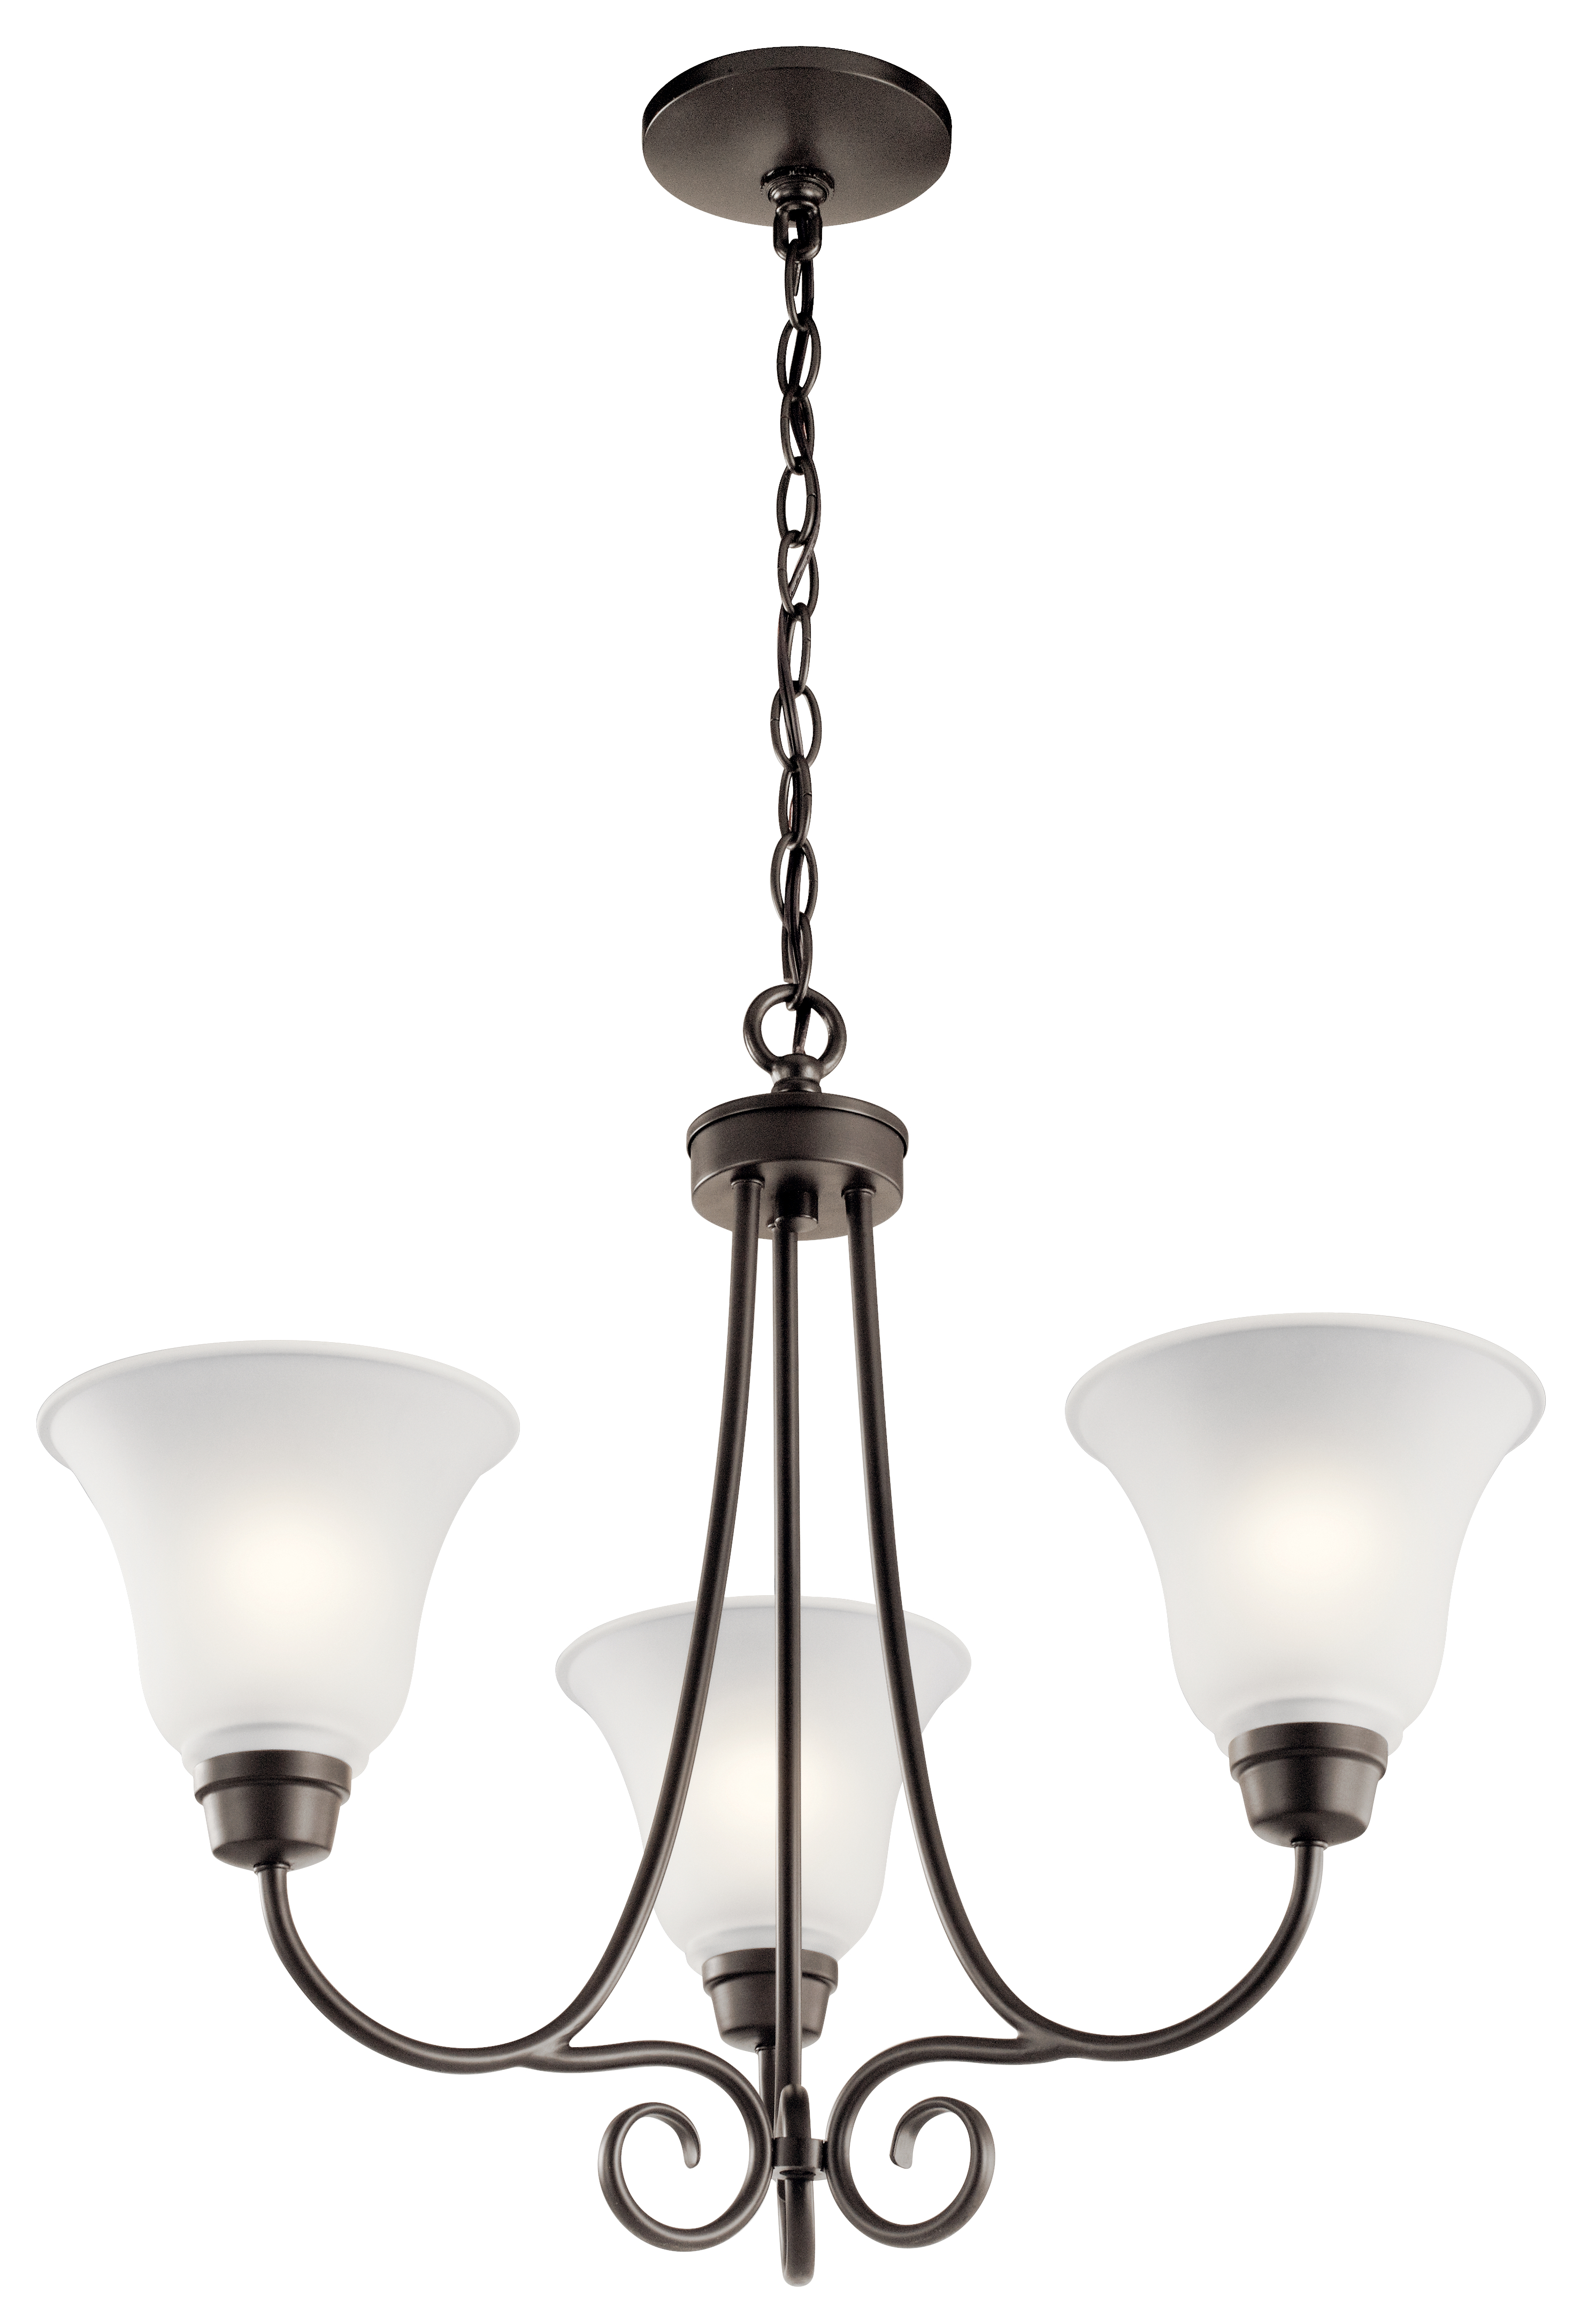 Kichler Bixler LED Chandelier with Satin Etched Shade - Olde Bronze (43937OZL16)